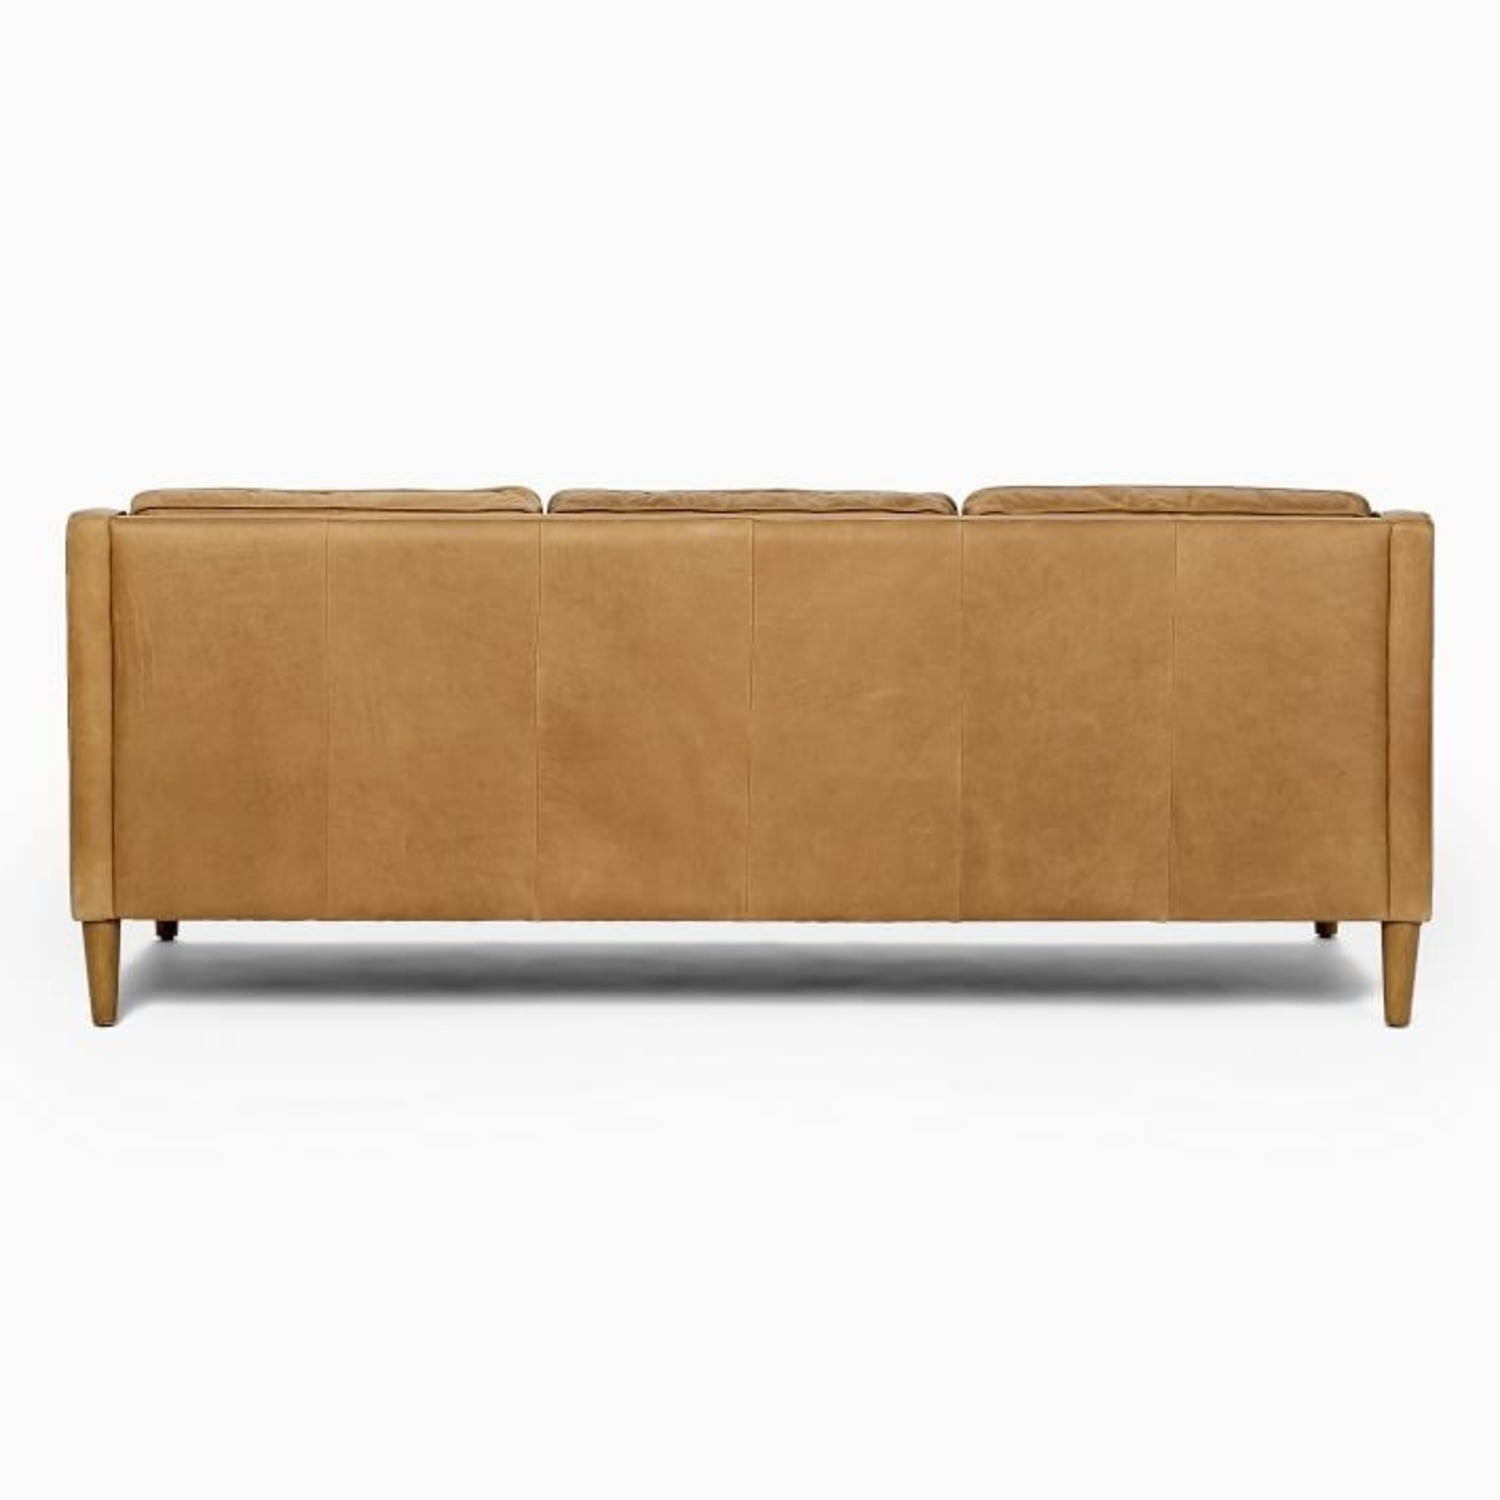 West Elm Leather Couch - image-1